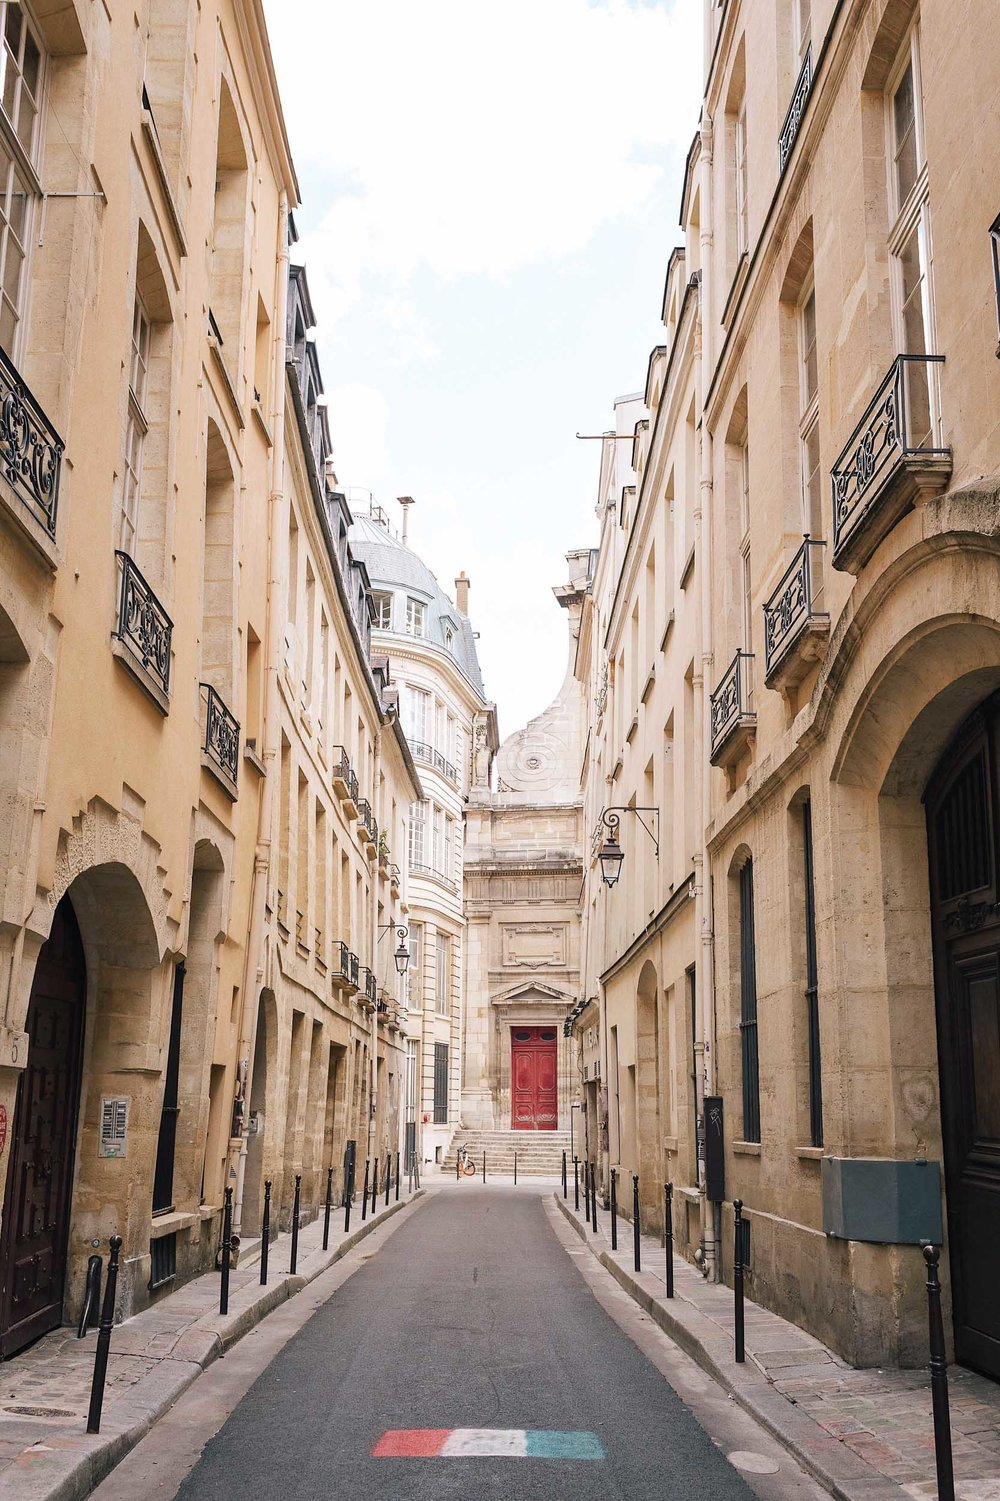 Paris itinerary 5 days - get lost exploring the neighborhood of Le Marais